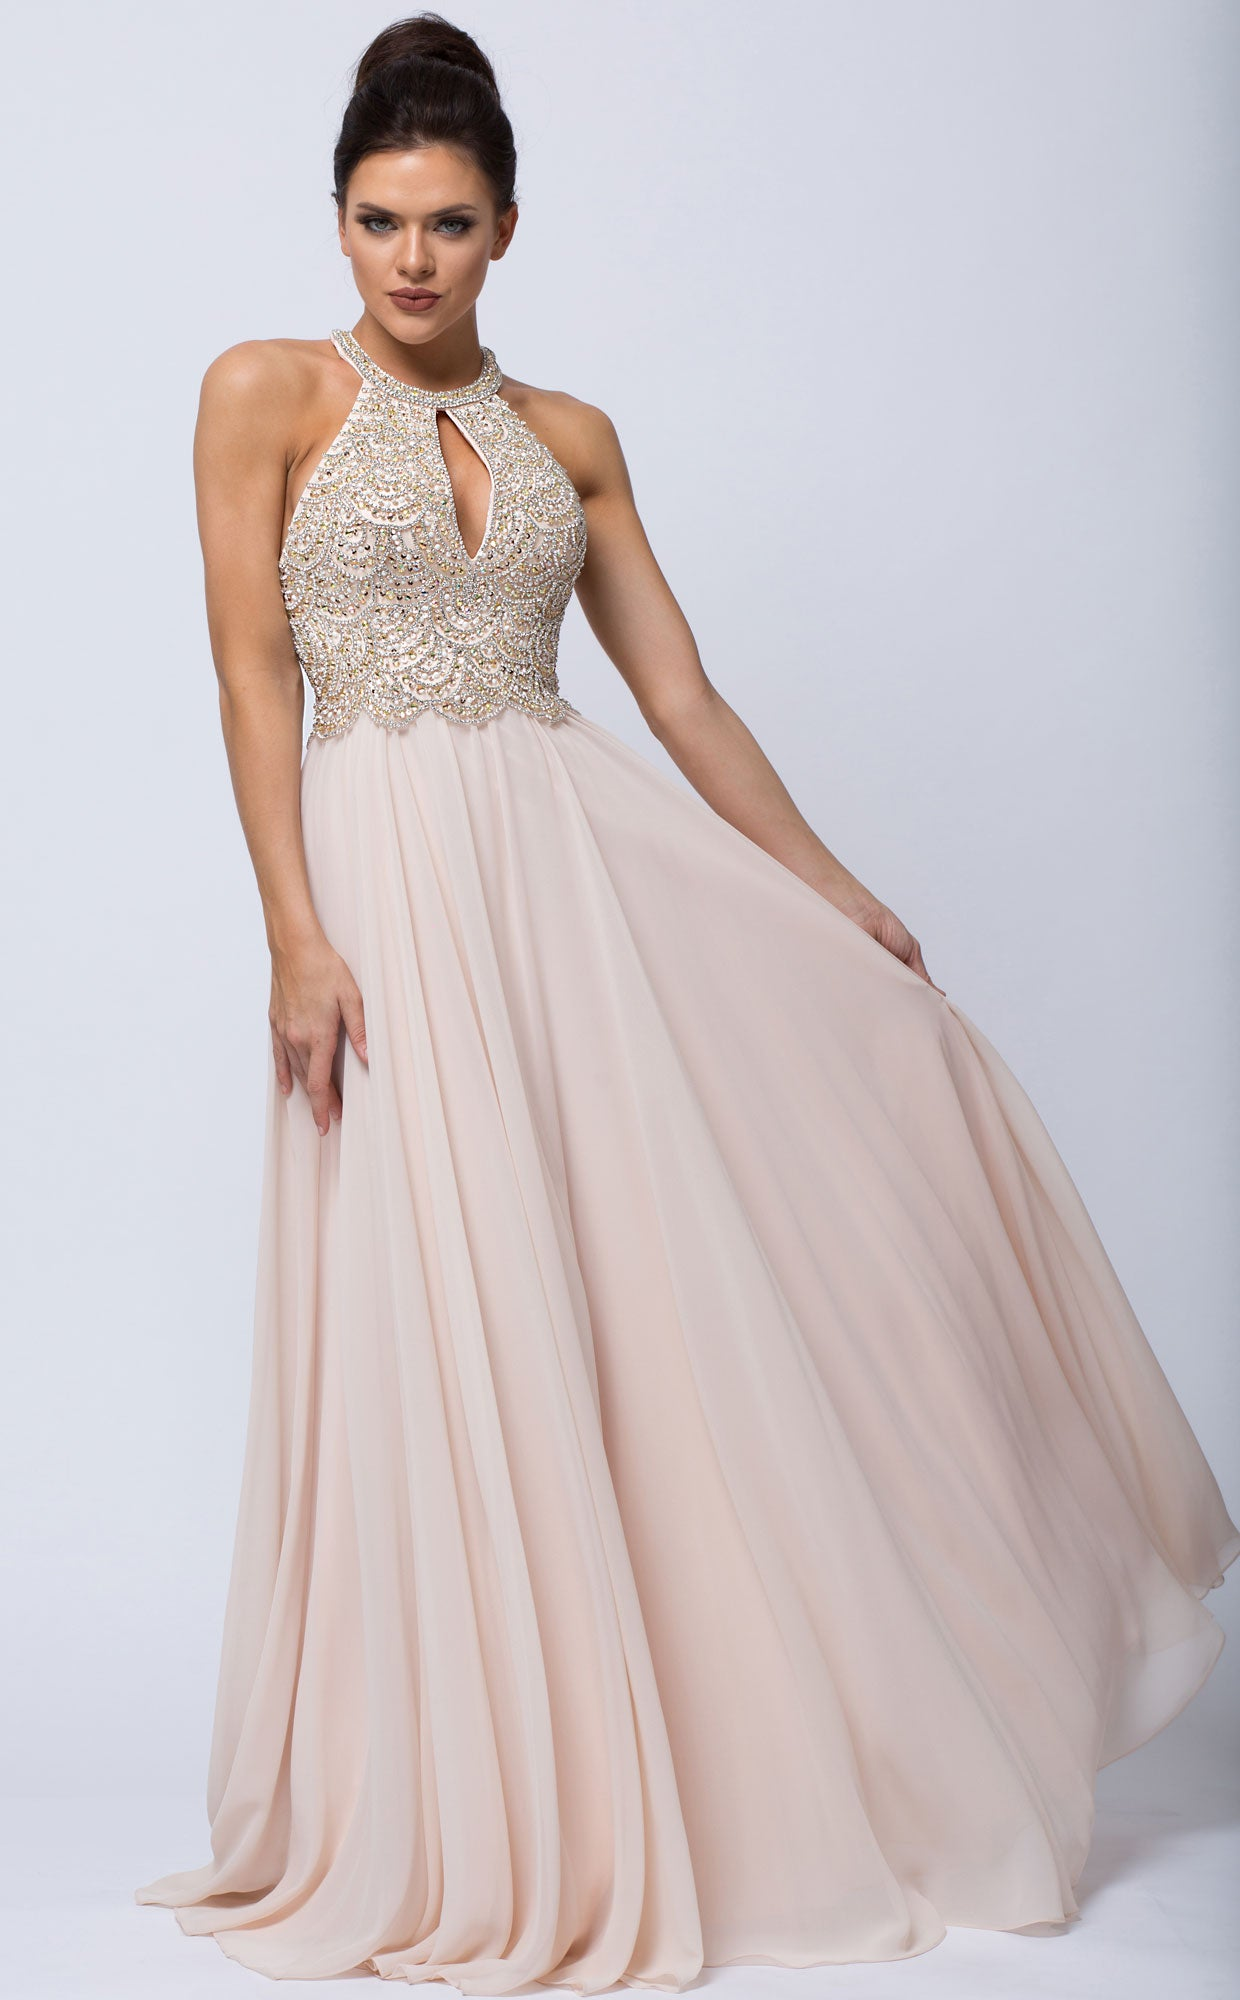 Image of Sleeveless Beaded Prom Dress With High Neckline in Champaign